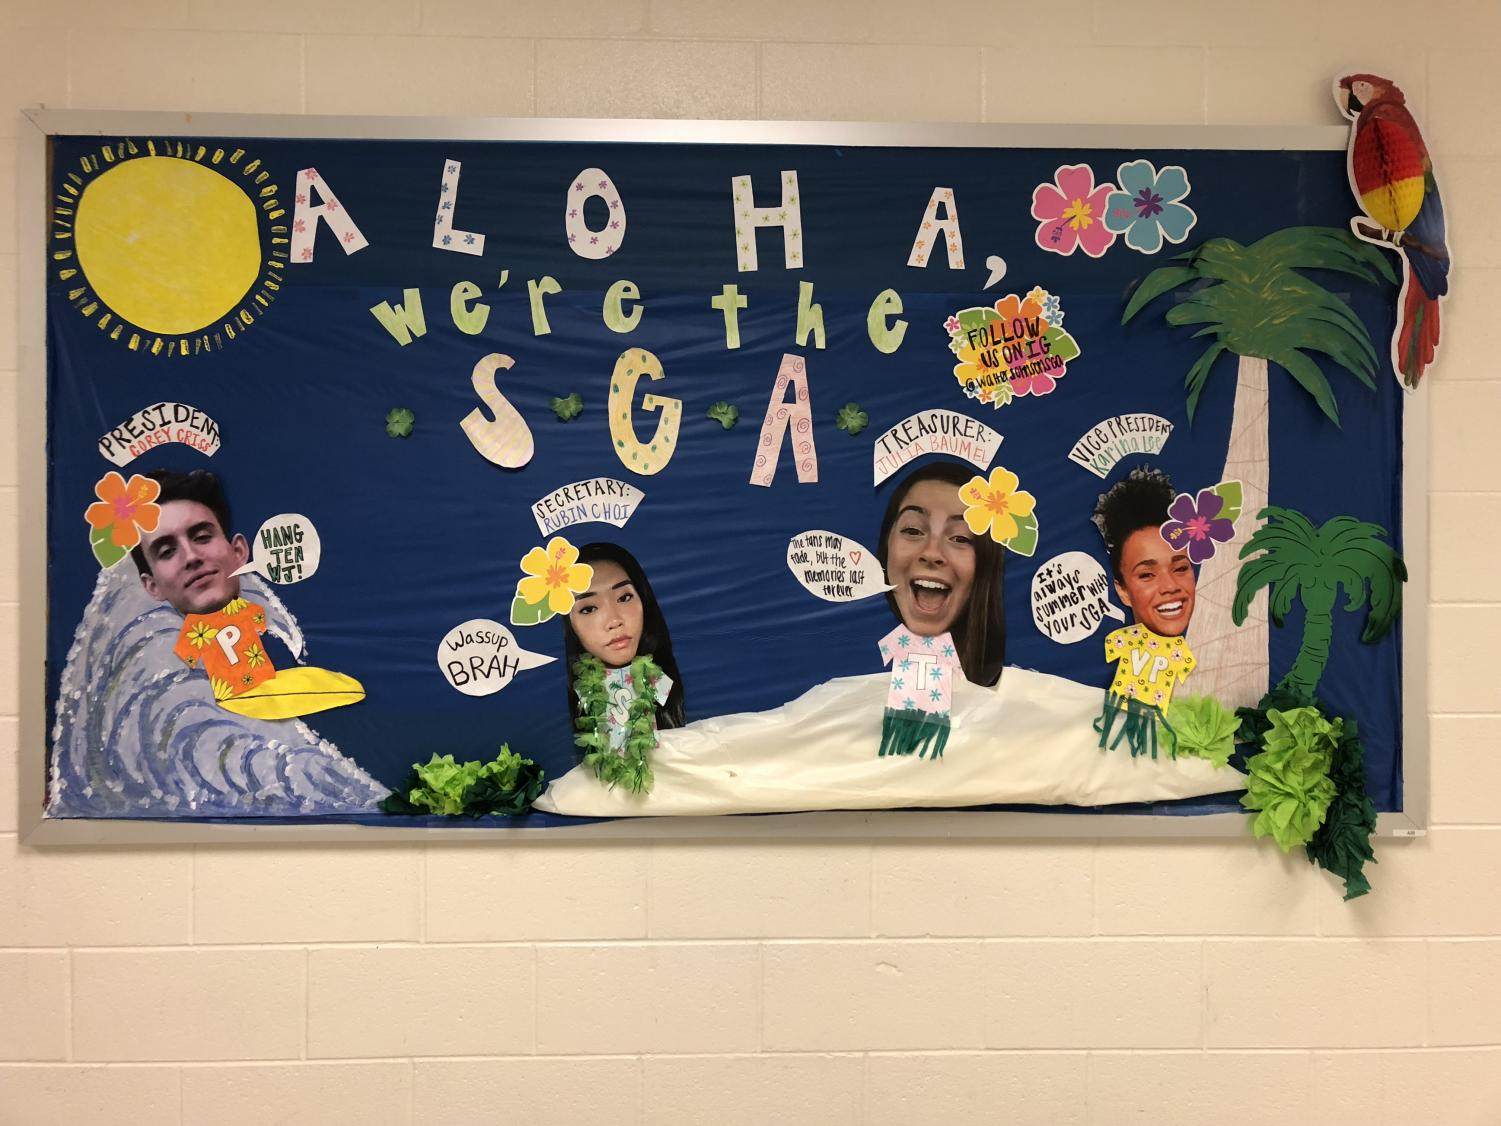 The new SGA keeps the tradition going by creatively decorating their bulletin board. This year's SGA is bringing new and improved wildcat spirit to the school.